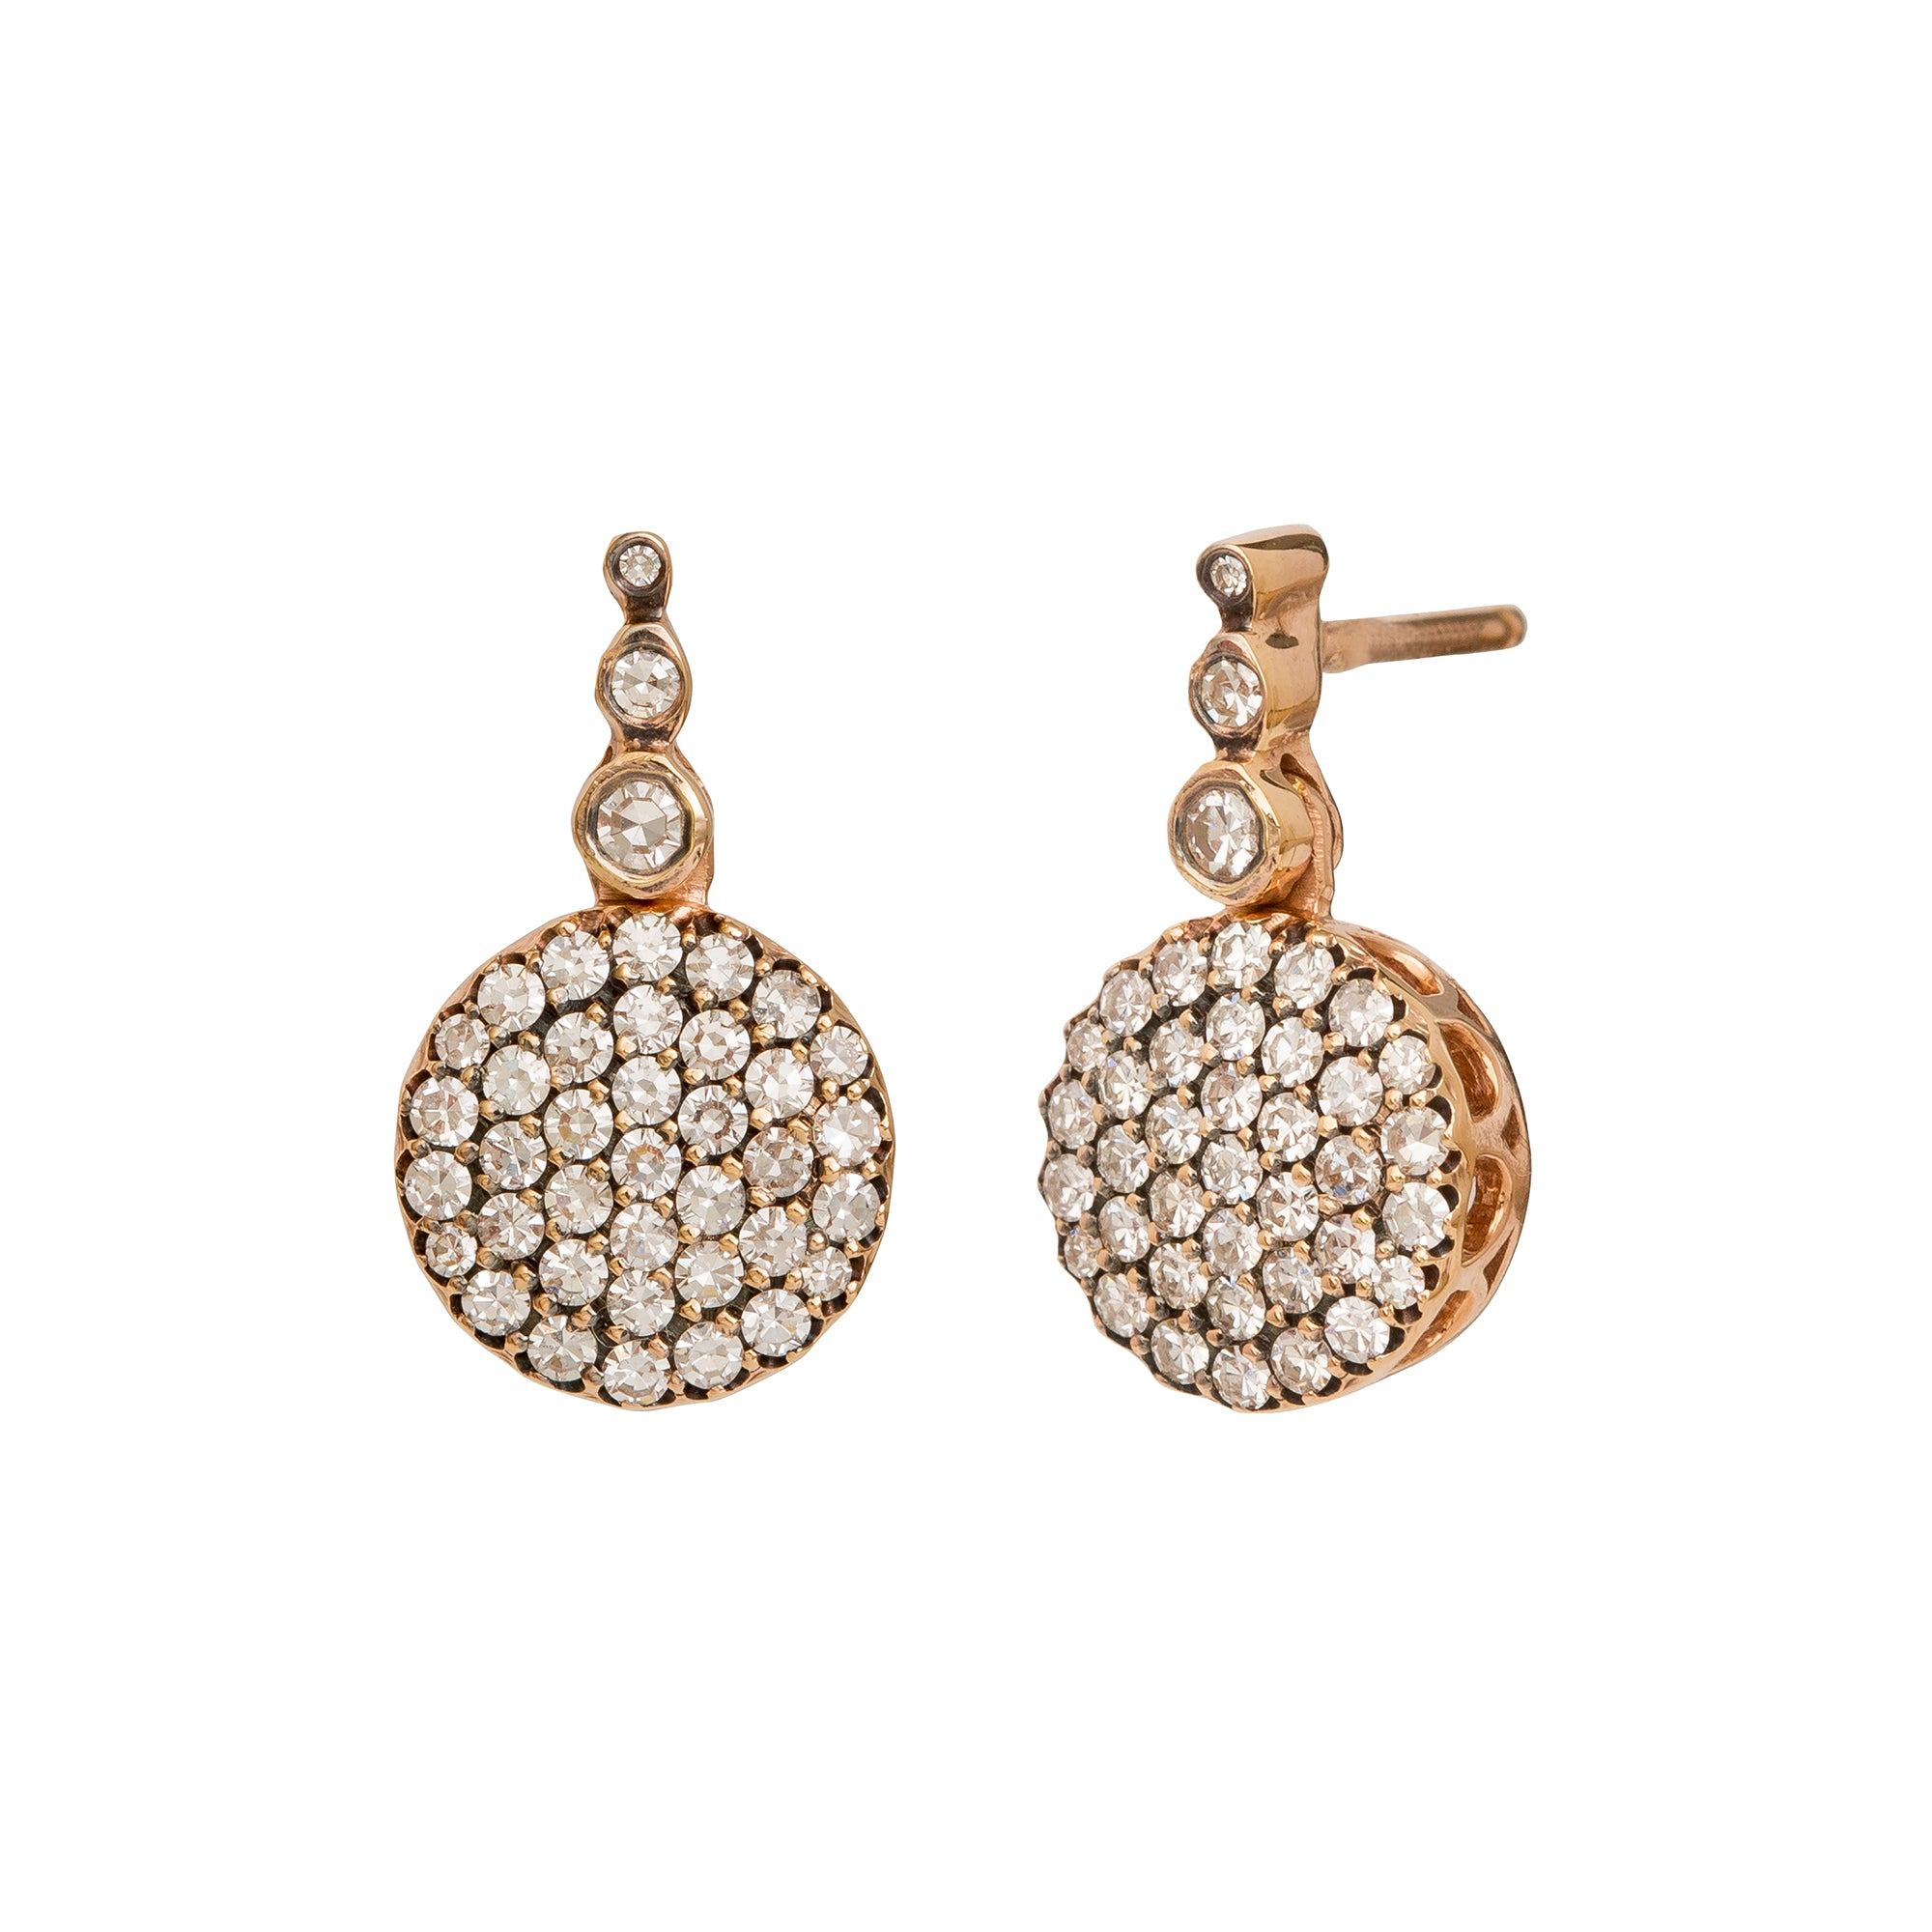 White Diamond Beirut Earrings - Selim Mouzannar - Earrings | Broken English Jewelry